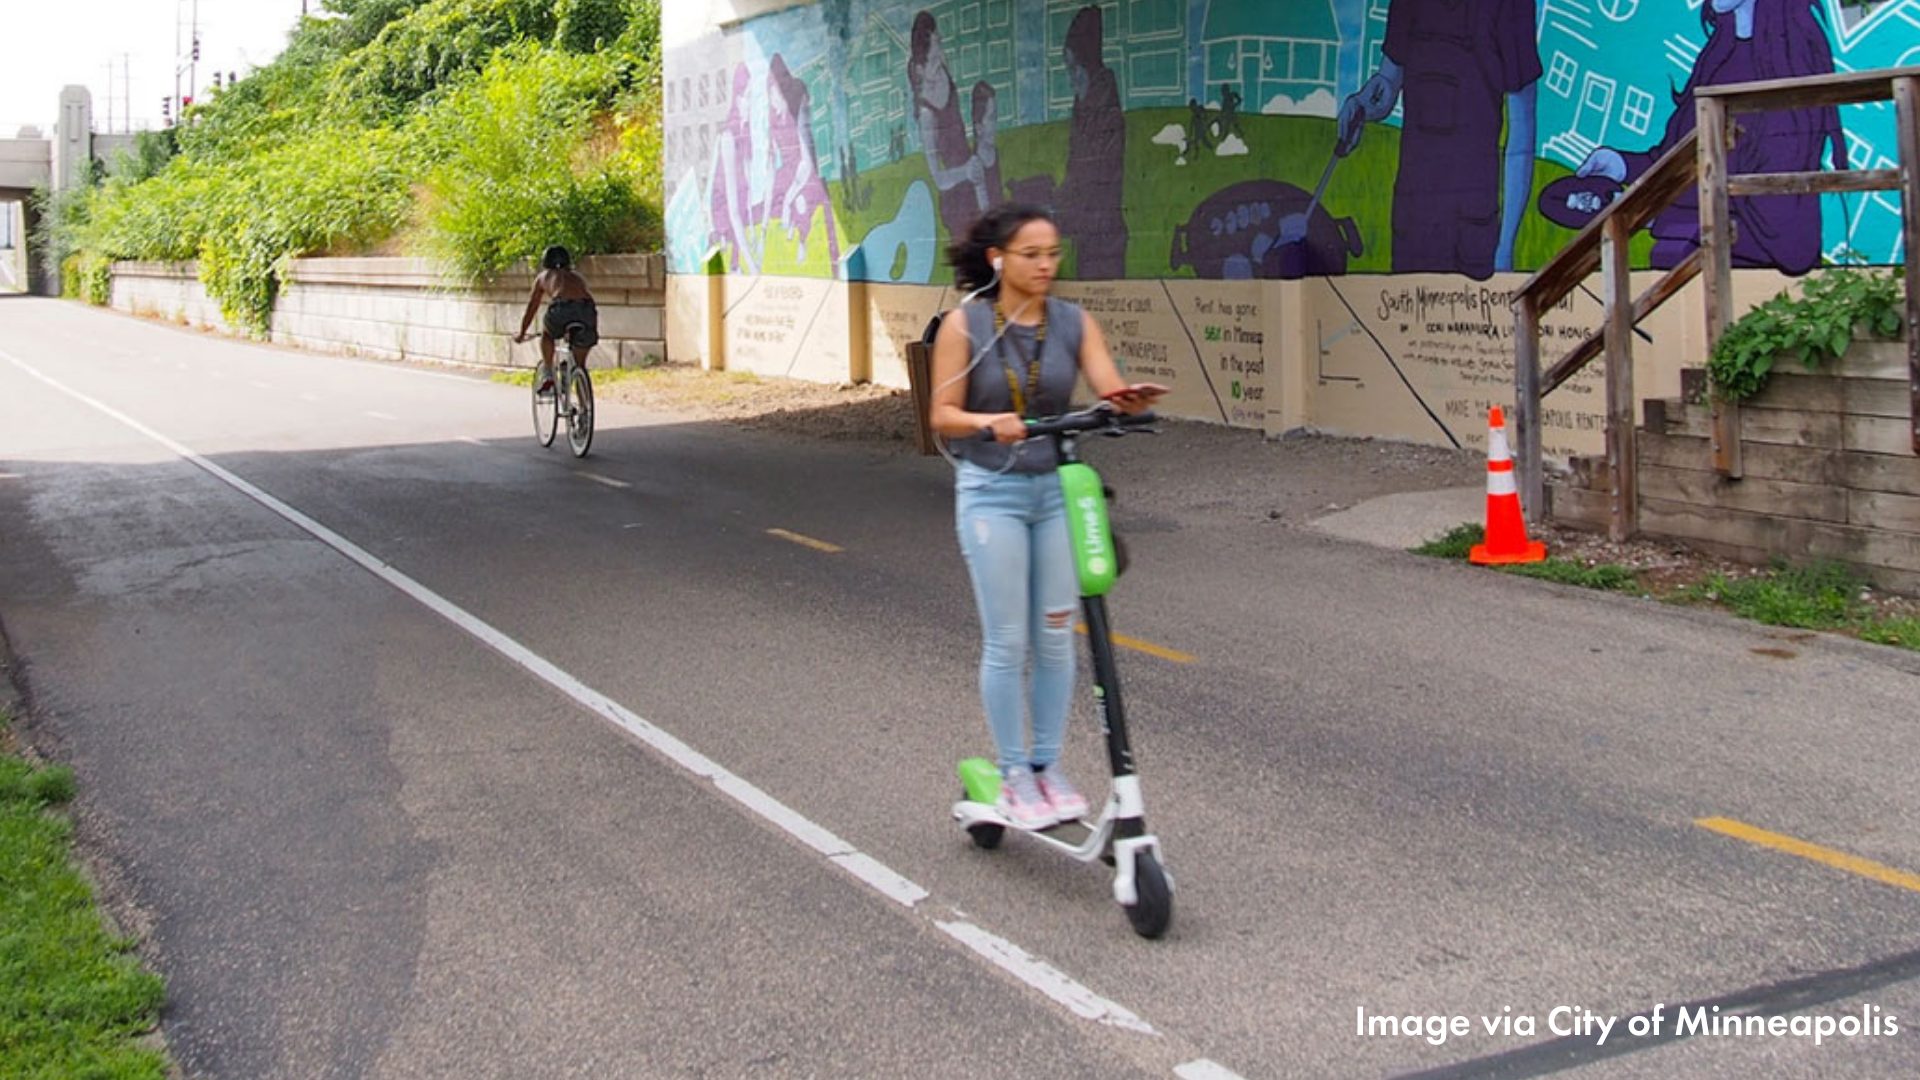 A person riding an electric scooter on the Midtown Greenway. There is a mural in the background.